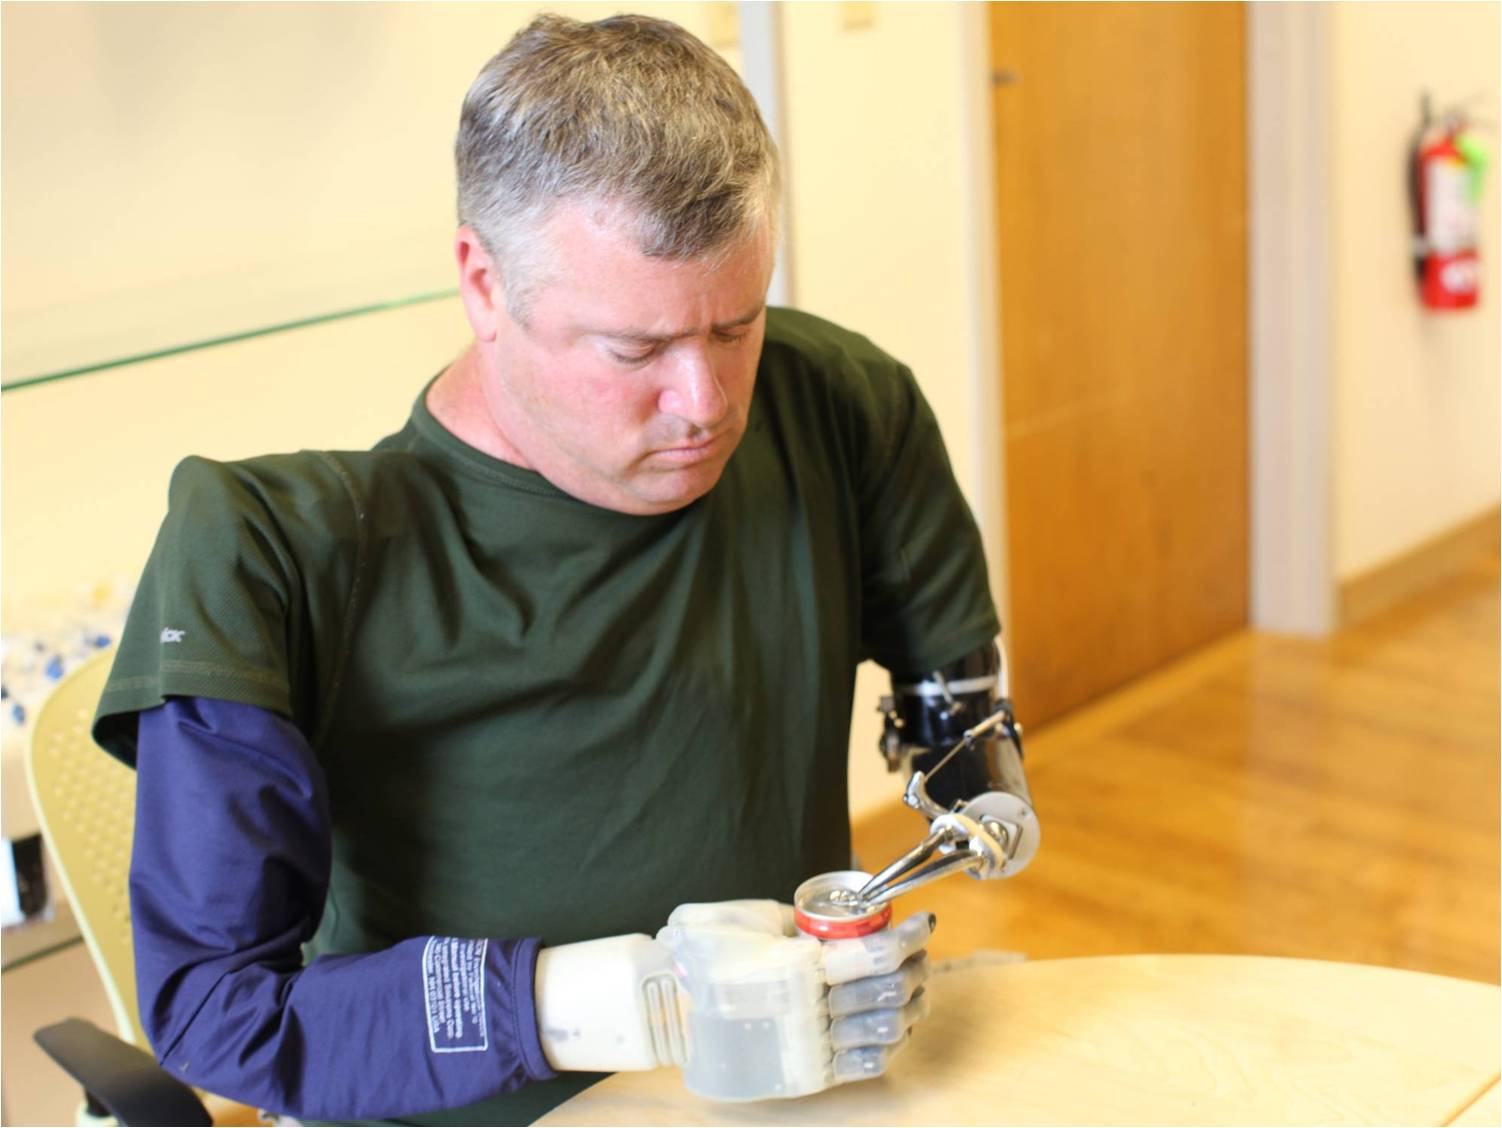 Paralyzed Man Becomes First To 'Feel' With Sophisticated Hand Prosthetic